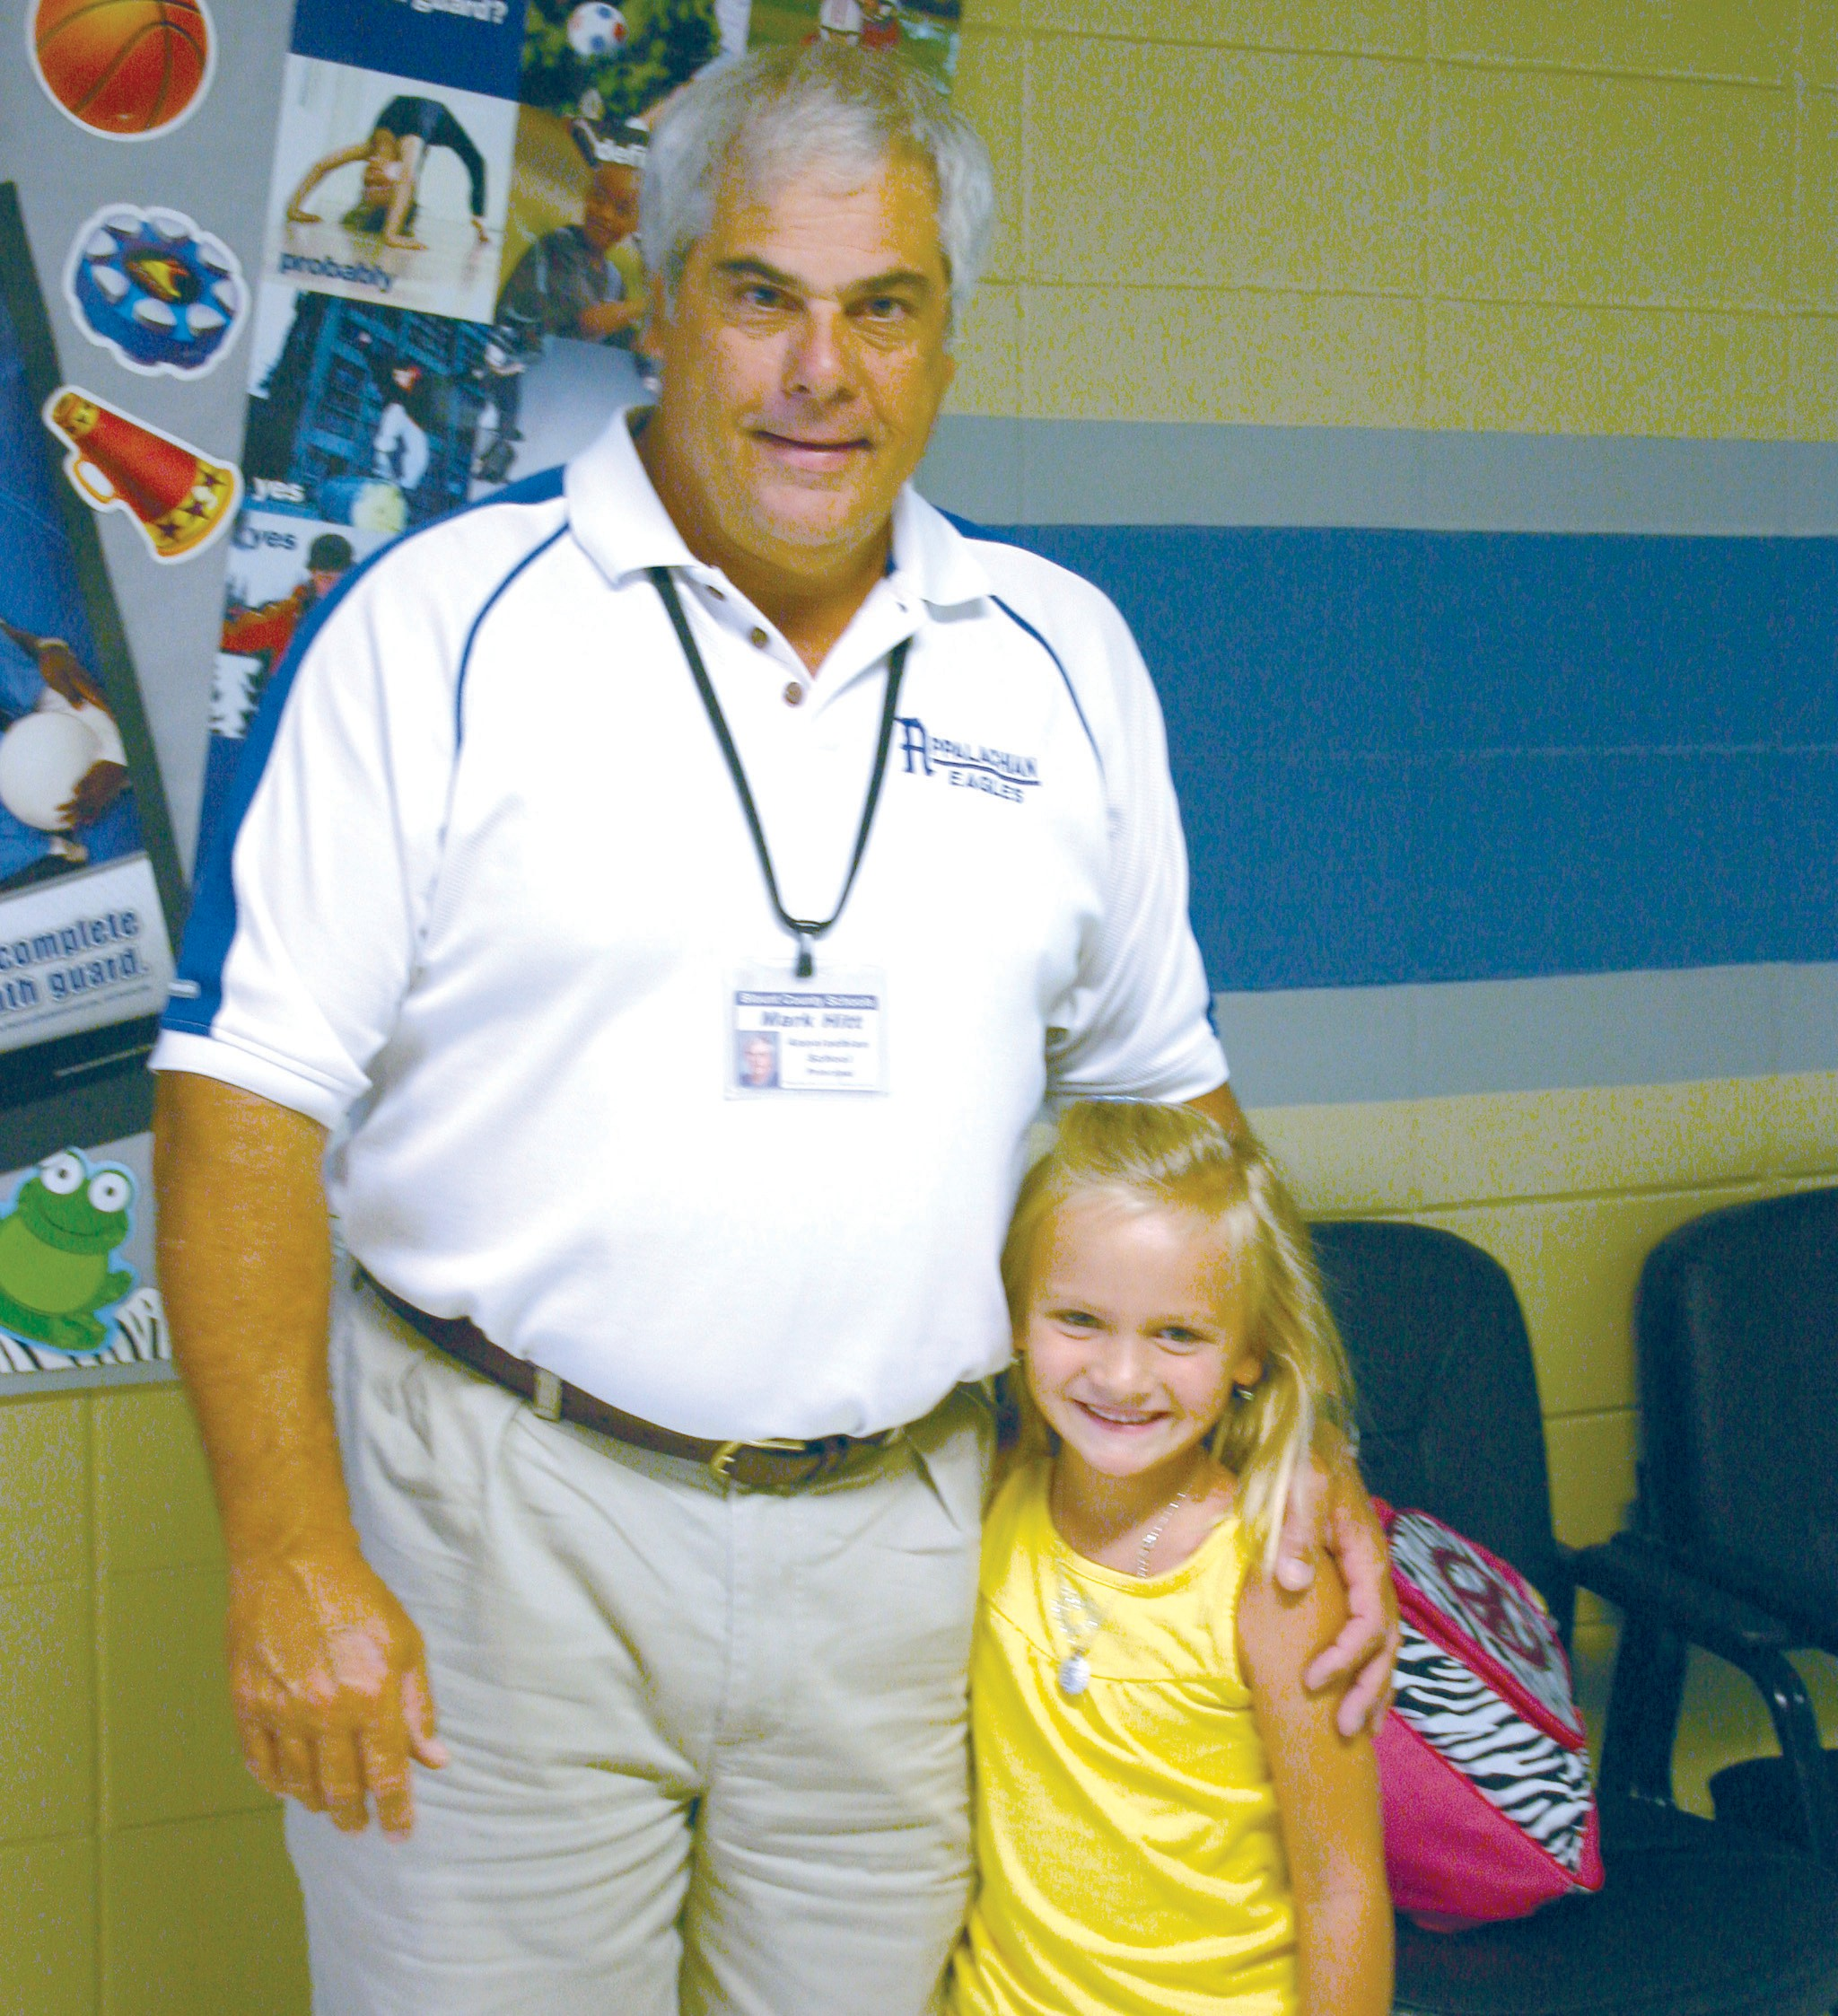 Sophie Latta is greeted on the first day of school last week by Appalachian School principal Mark Hitt. Sophie is one of 46 new kindergarten students that began the year at the school. Thursday was the first day of school for all students in both the Blount County and Oneonta City systems. Sophie is the daughter of Chris and Paige Latta. –Rob Rice